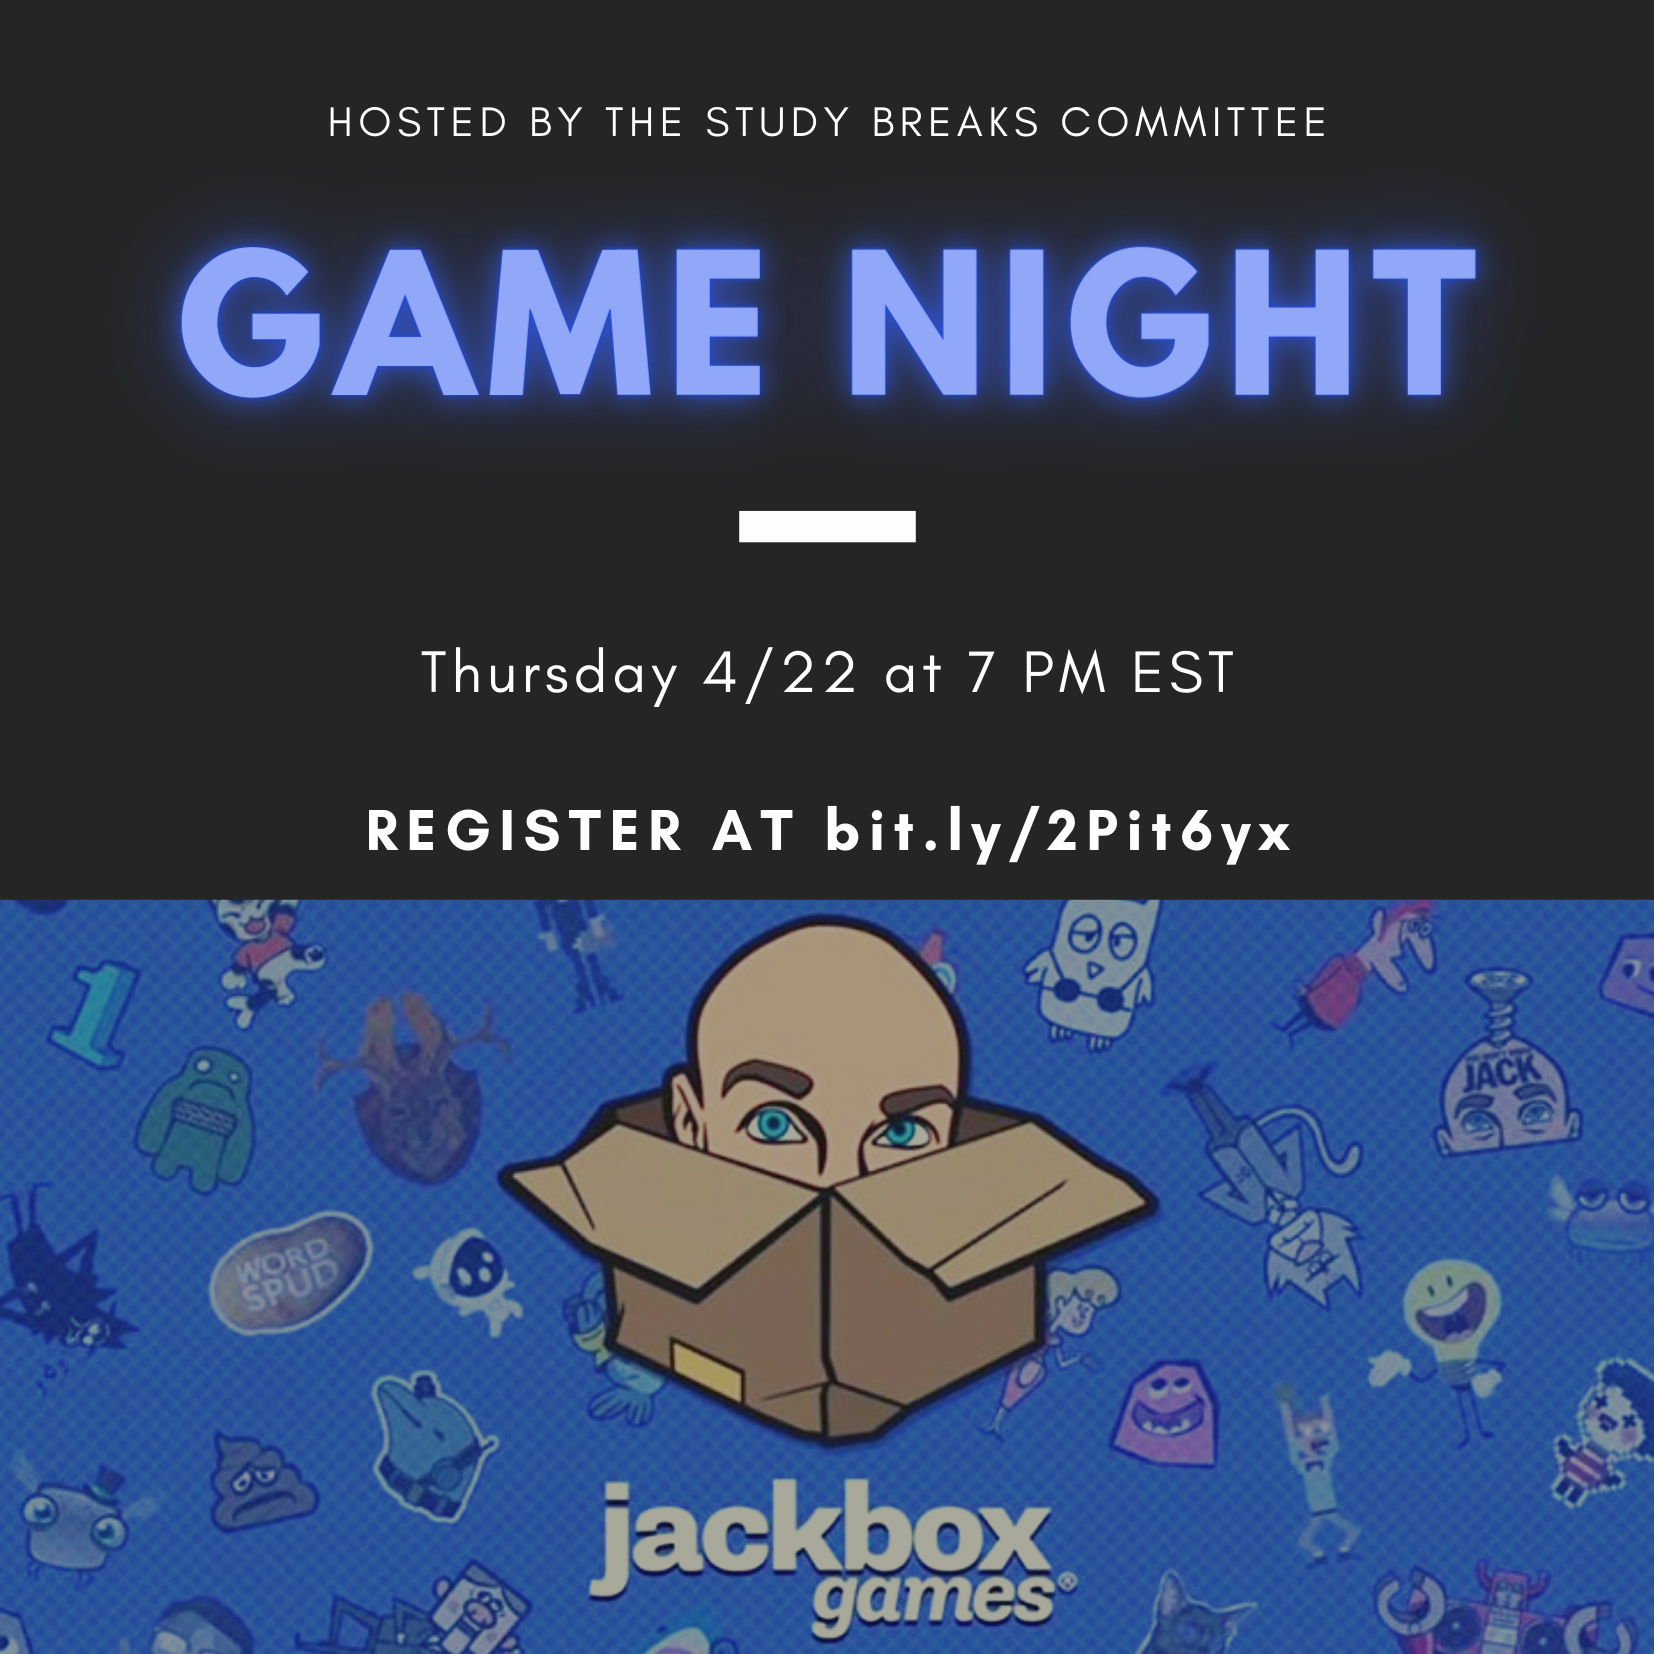 Advertisement for game night.